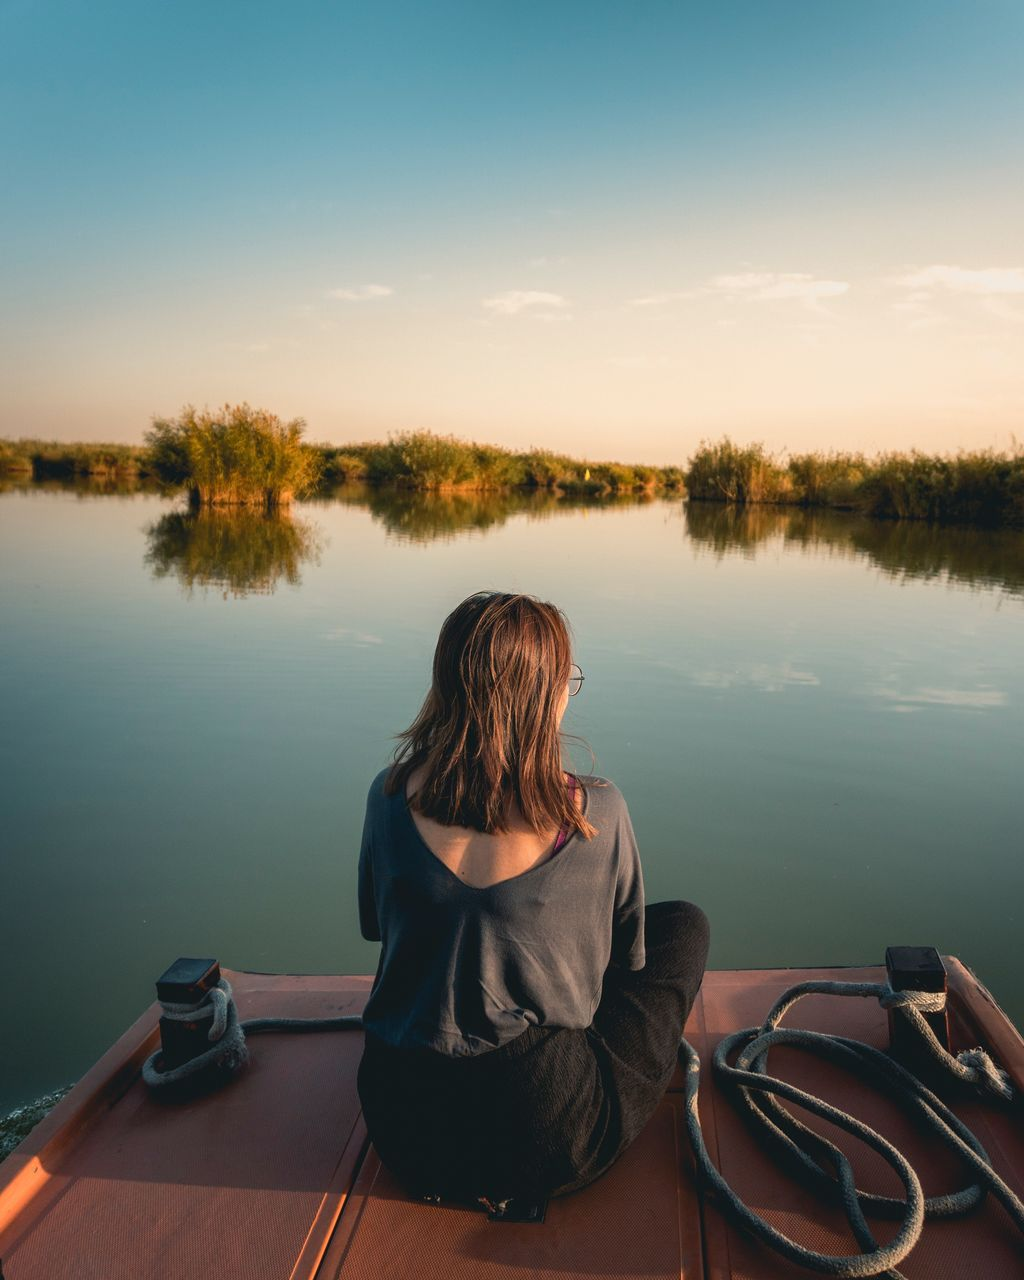 water, lake, one person, nature, real people, tranquility, rear view, tranquil scene, beauty in nature, sunset, sitting, reflection, scenics, outdoors, sky, tree, standing, day, nautical vessel, women, clear sky, people